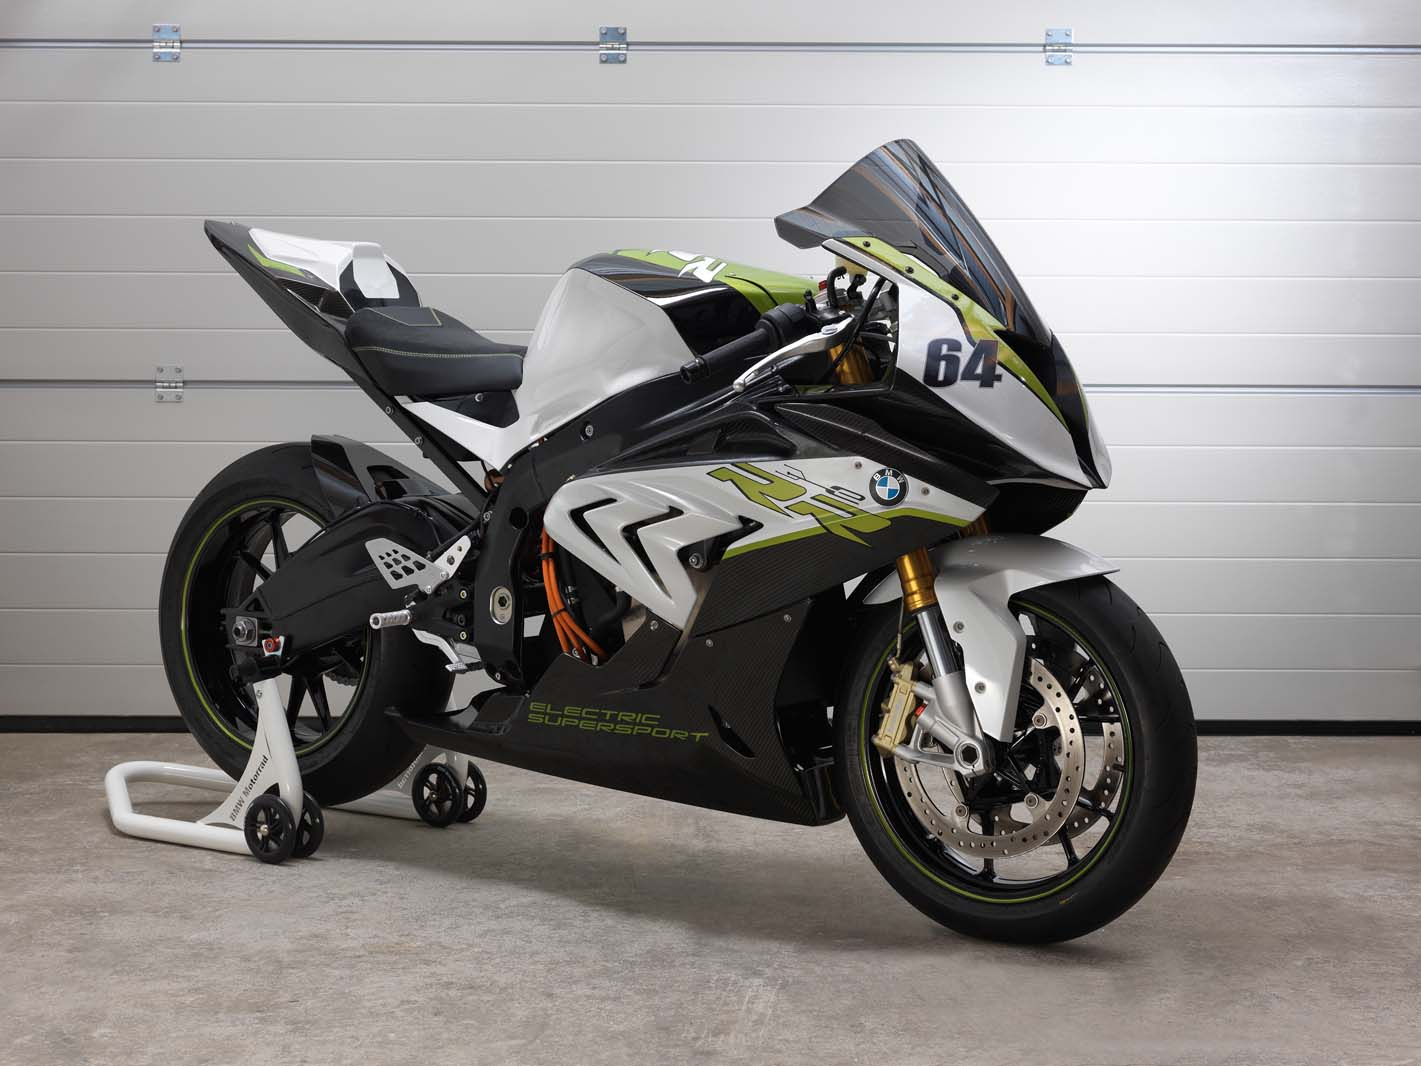 BMW Gives a Glimpse of Its Electric Supersport Motorcycle